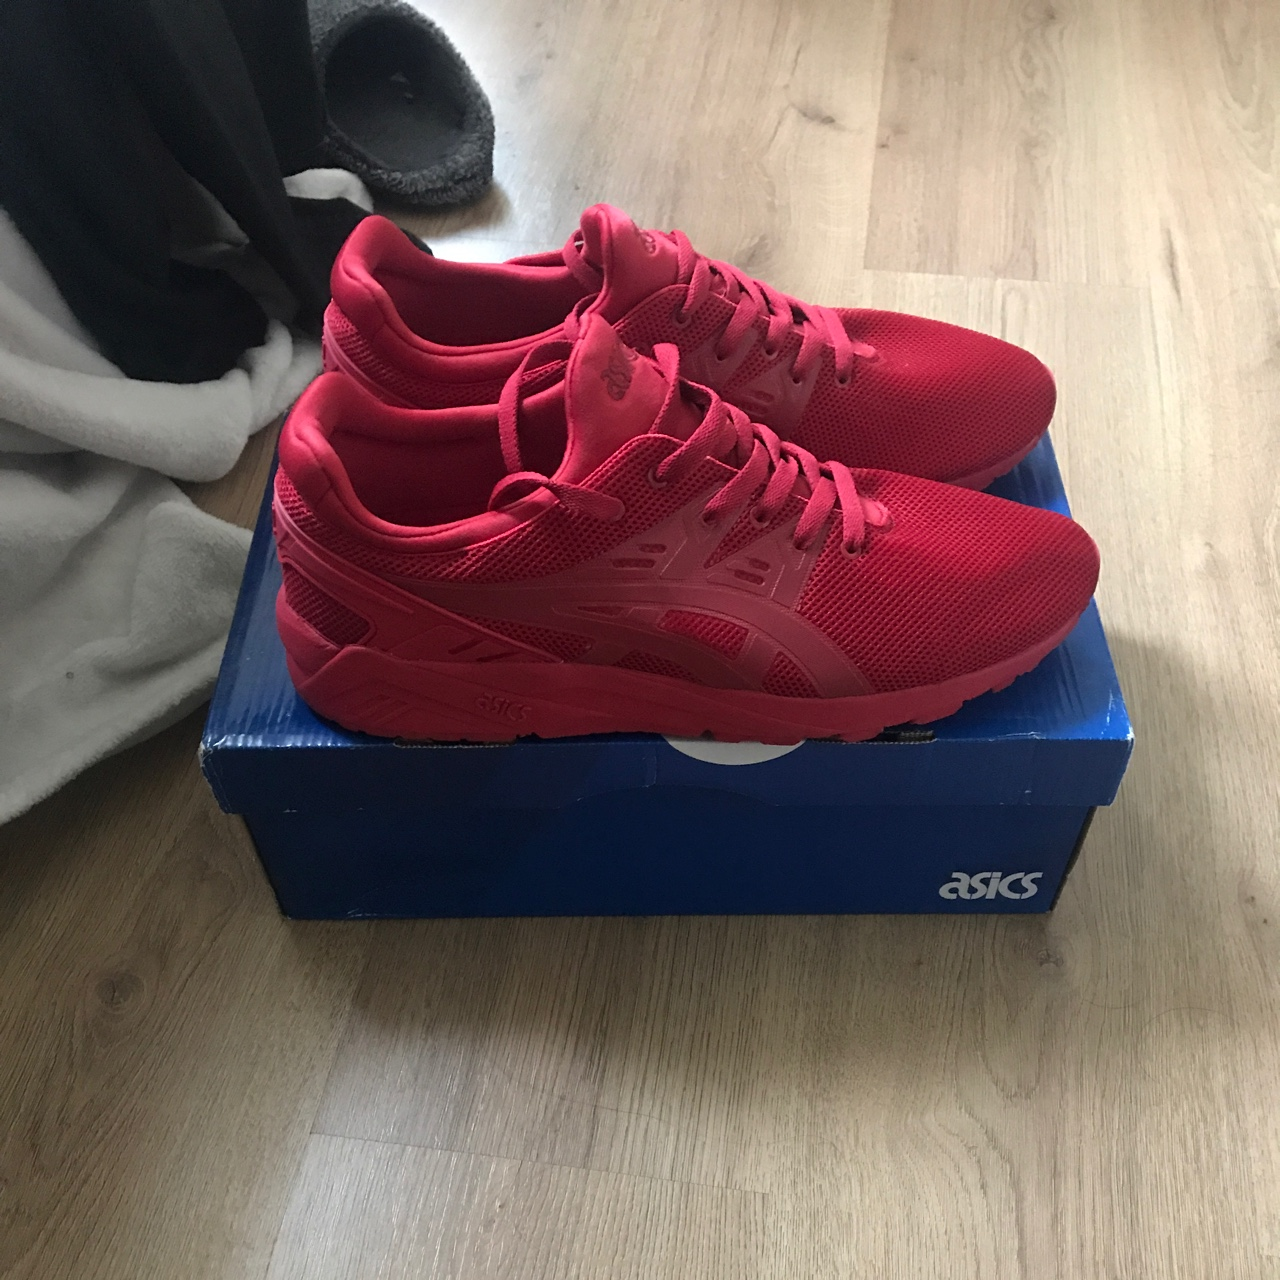 new style f6b89 acfea Asics Gel-Kayano Trainer Evo Red Brand new with tags... - Depop